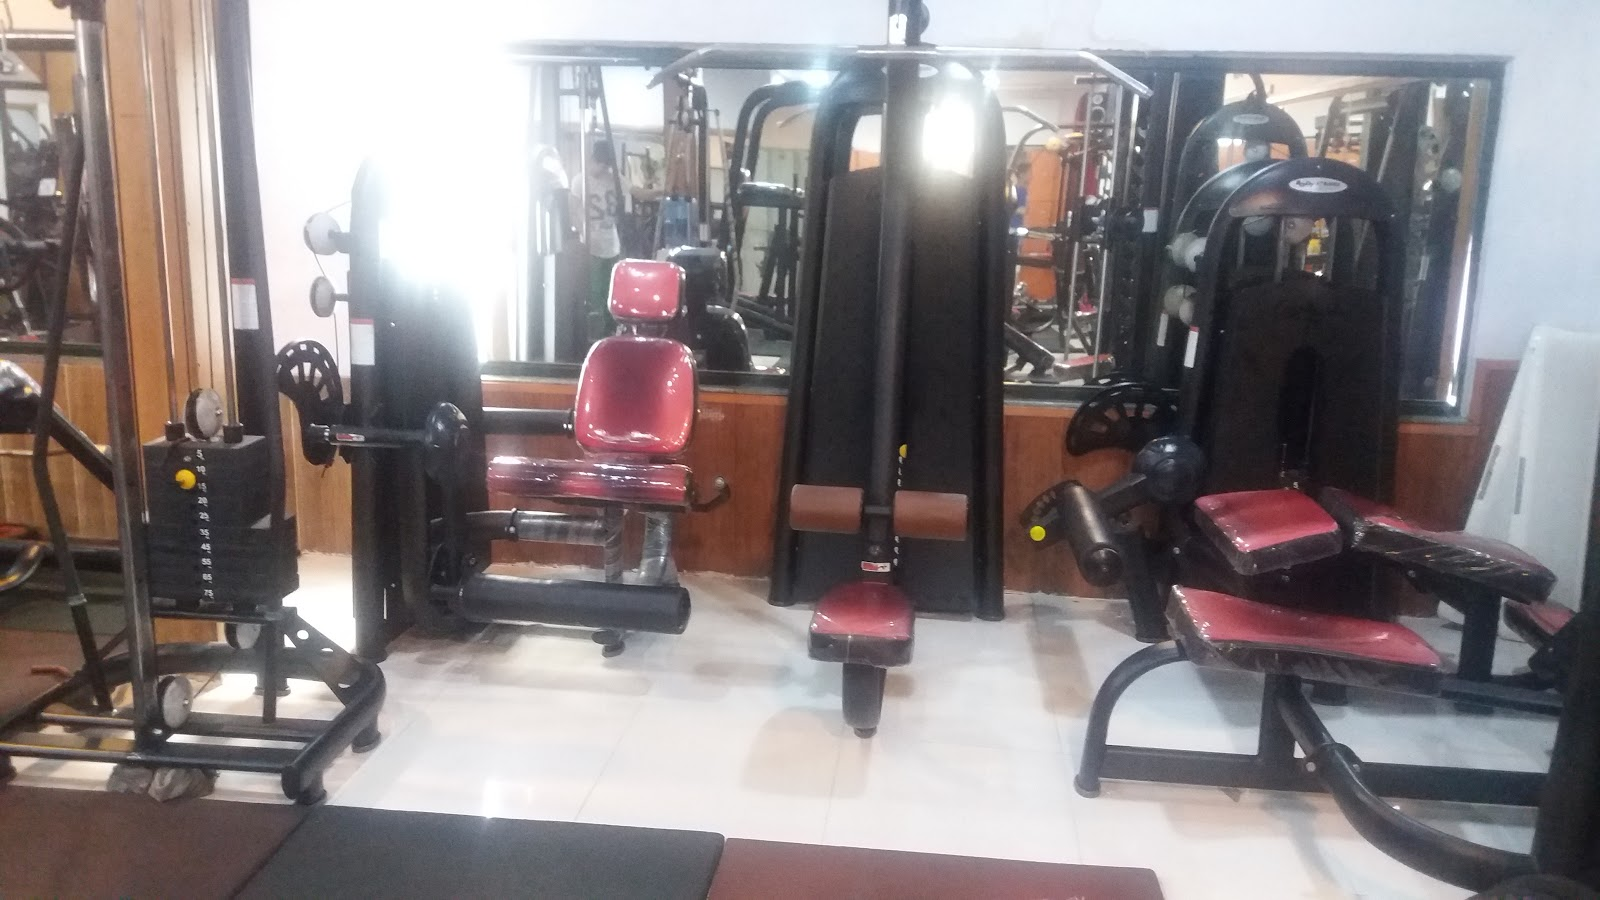 Mashaal Gym - photo